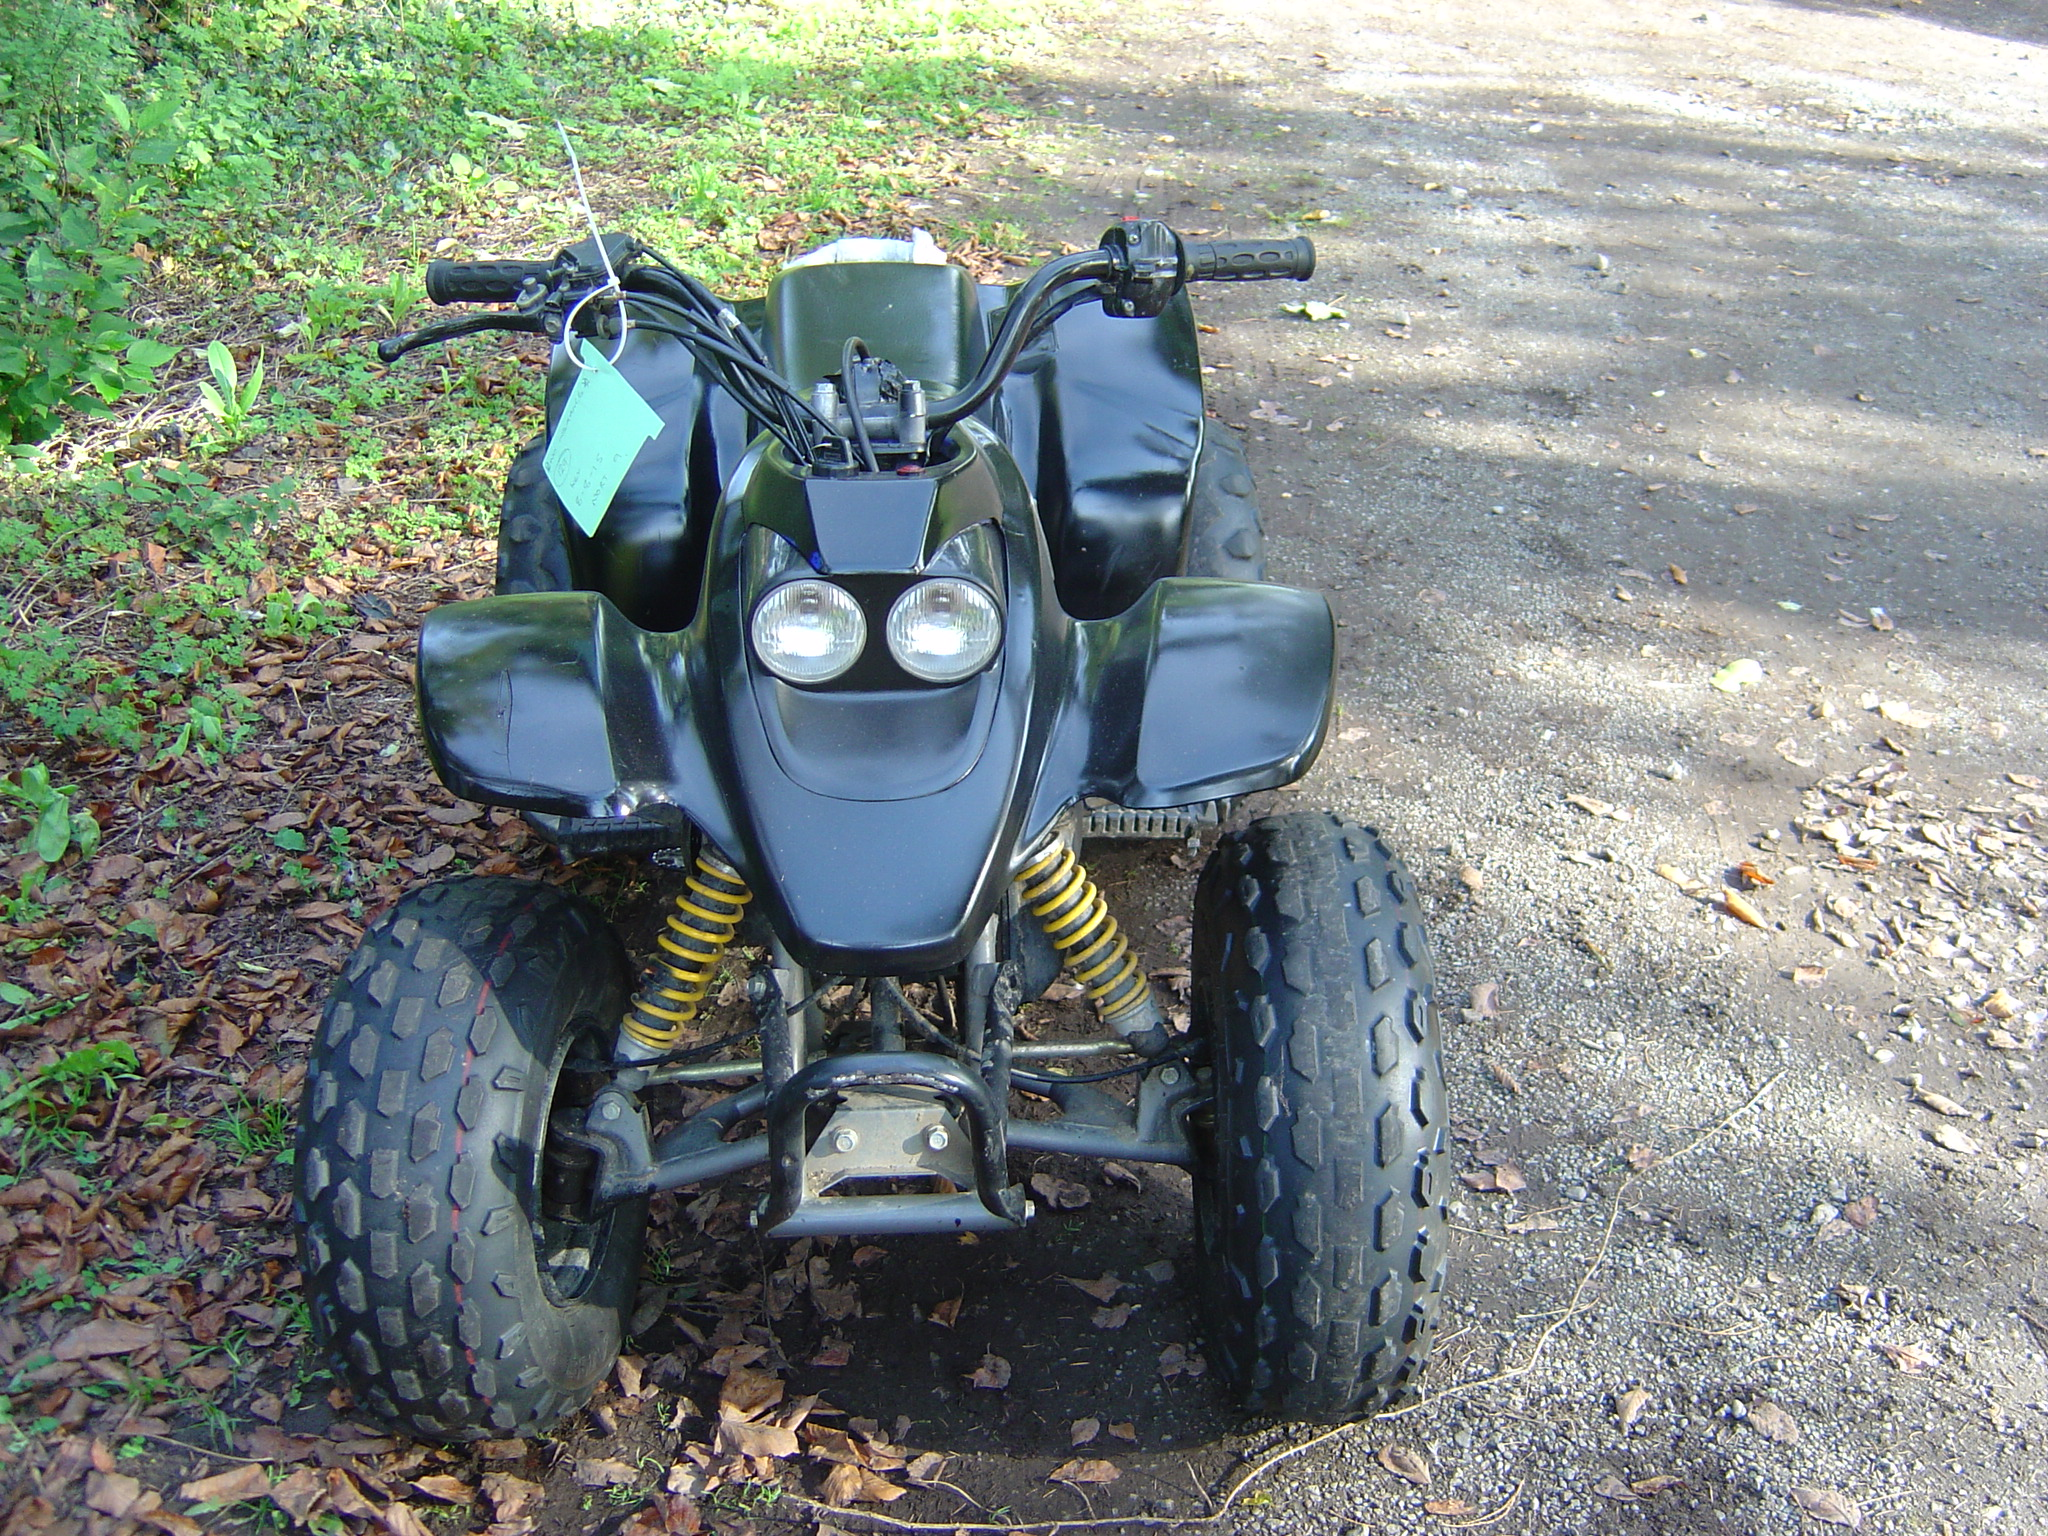 Quad bike breakers